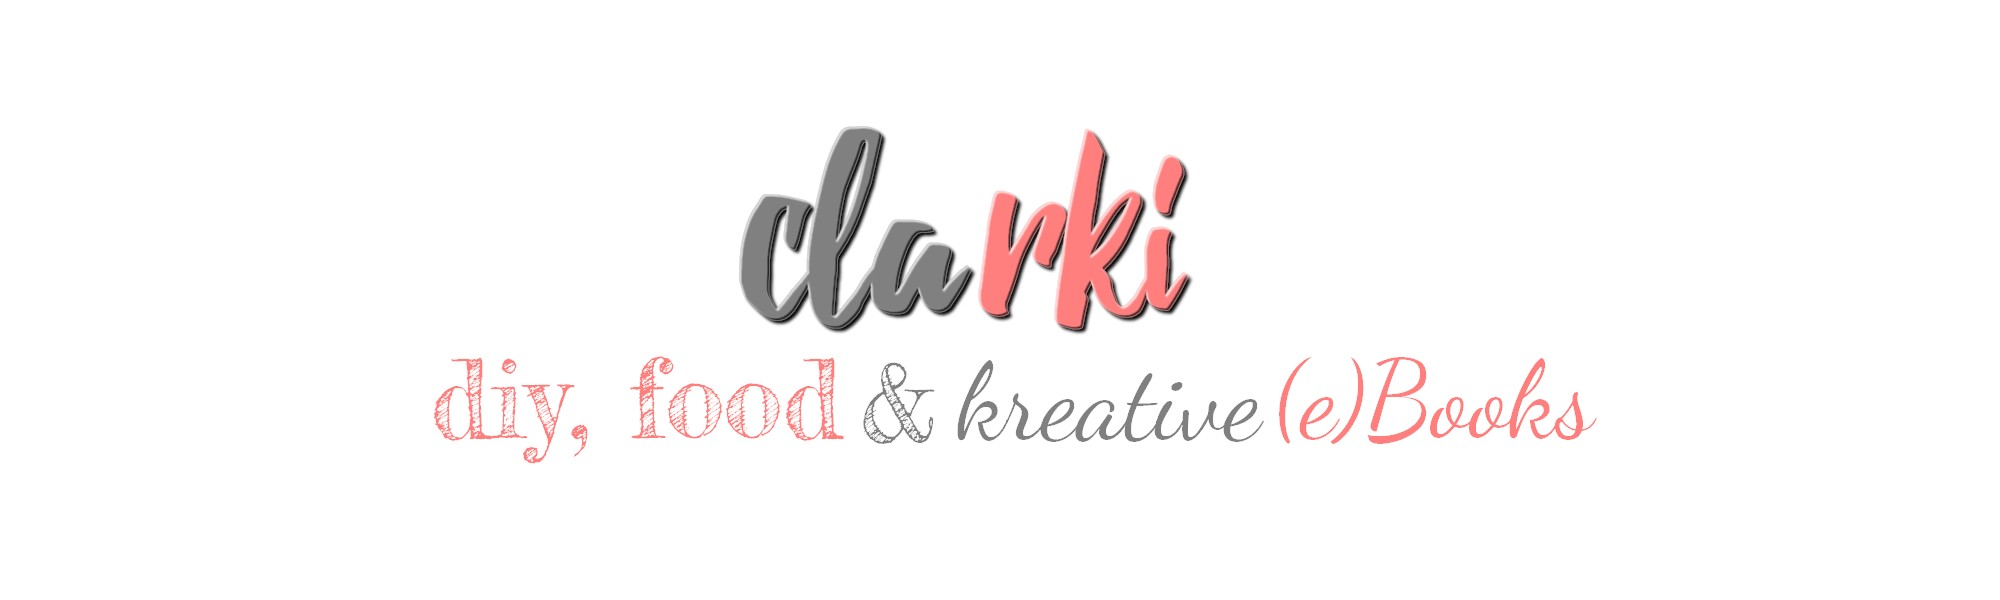 clarki.de – DIY, Food, kreative Bücher & (e)Books